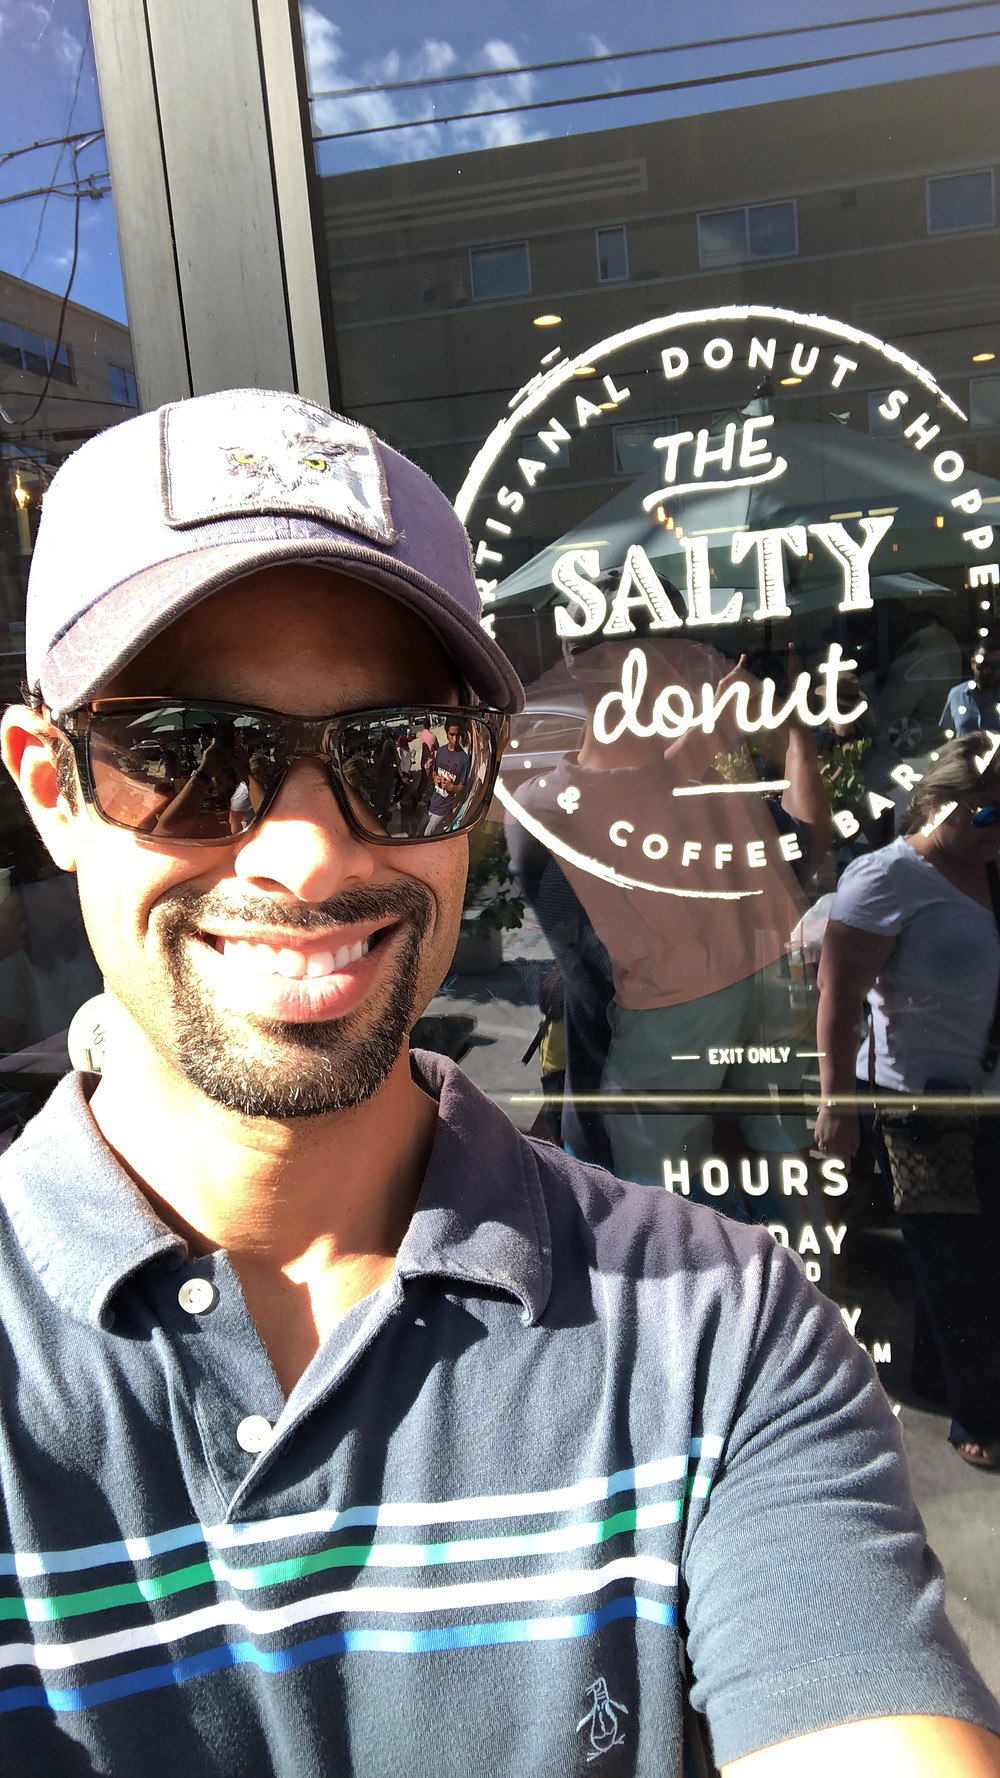 there are some major fat and carbs at the salty donut!